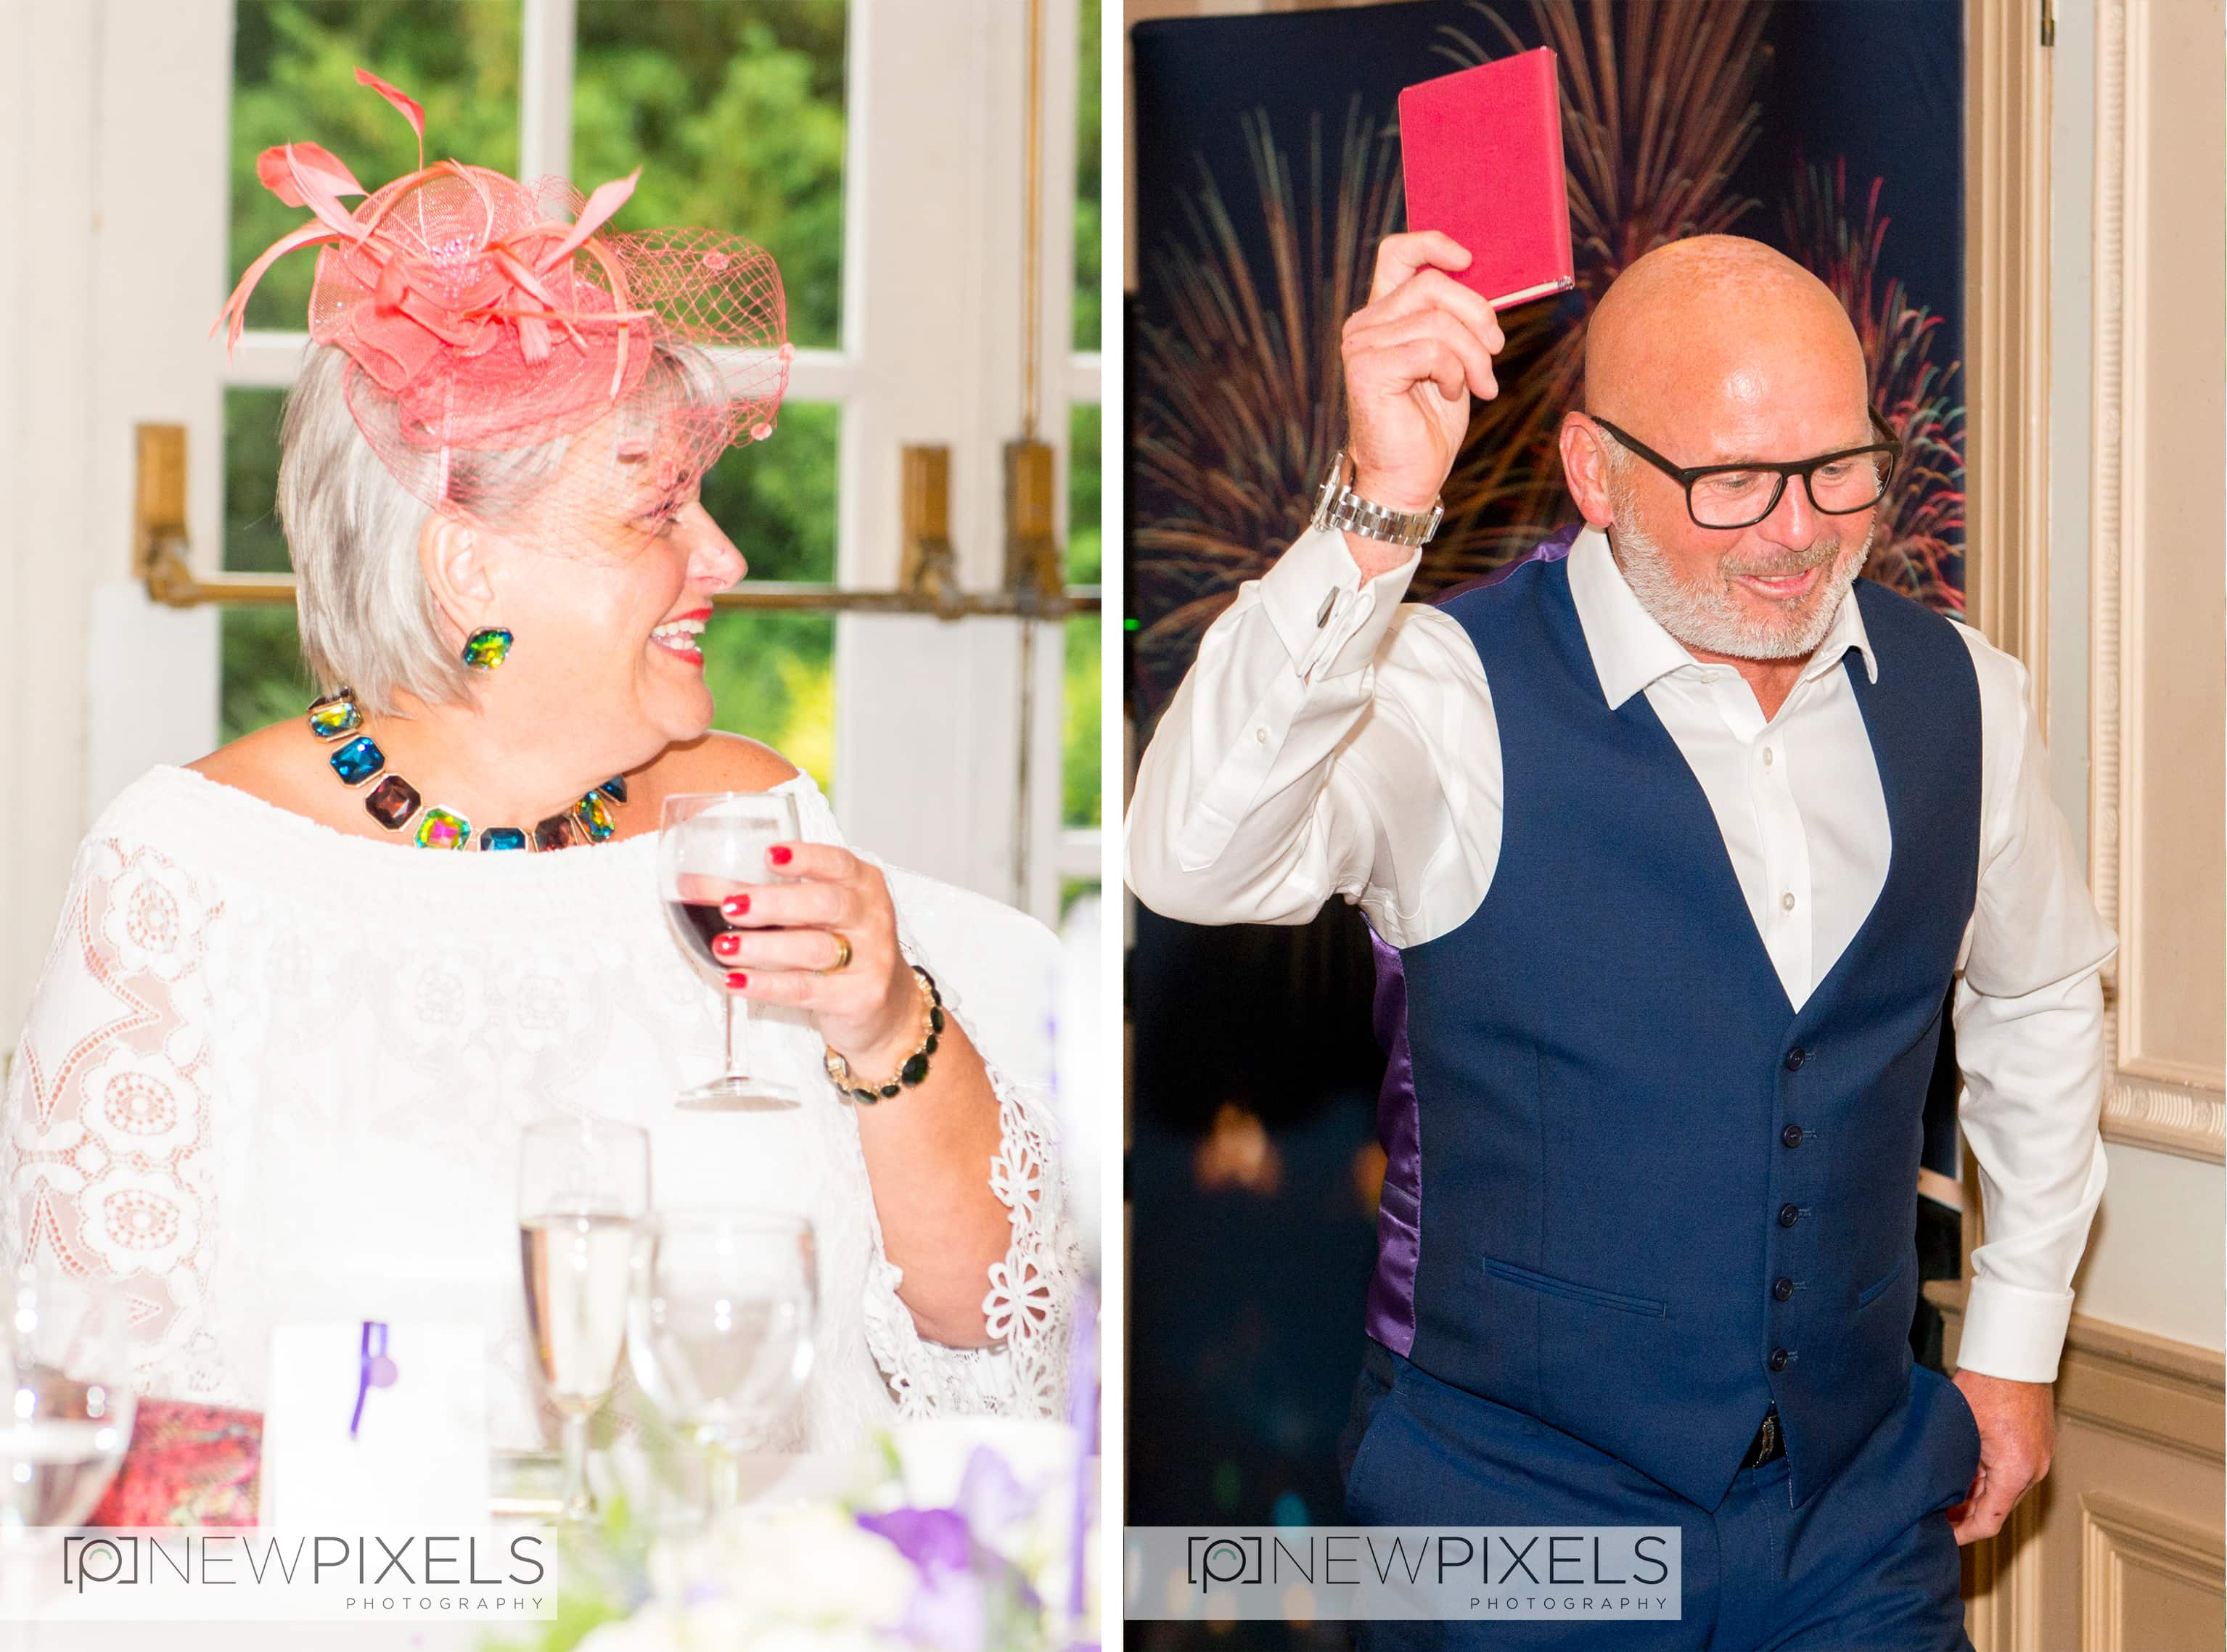 downhall wedding photographer8